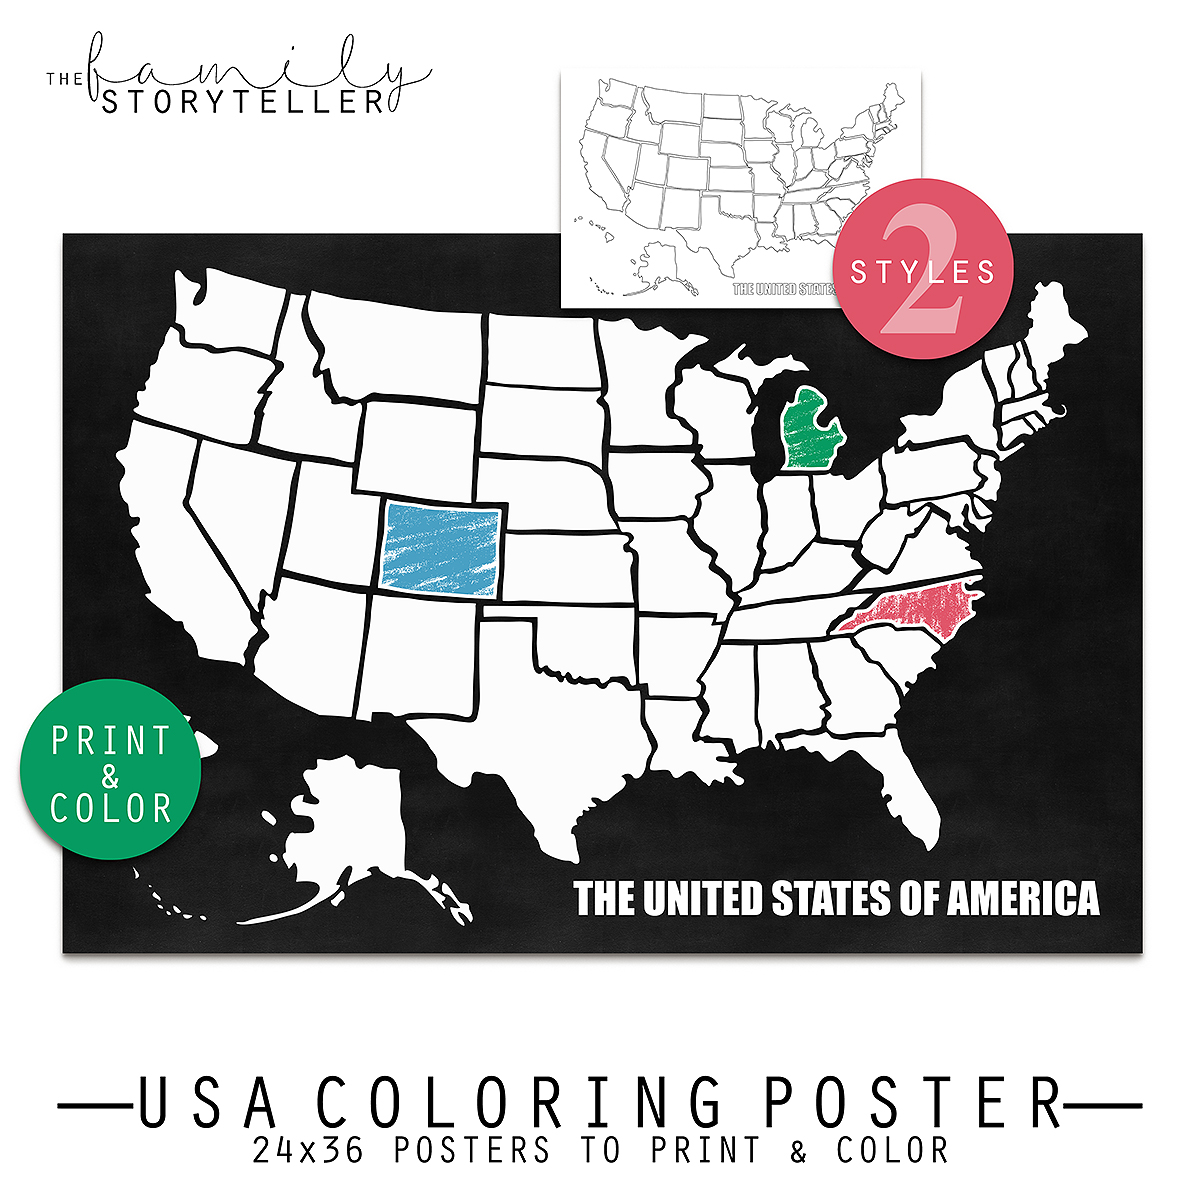 print color posters the